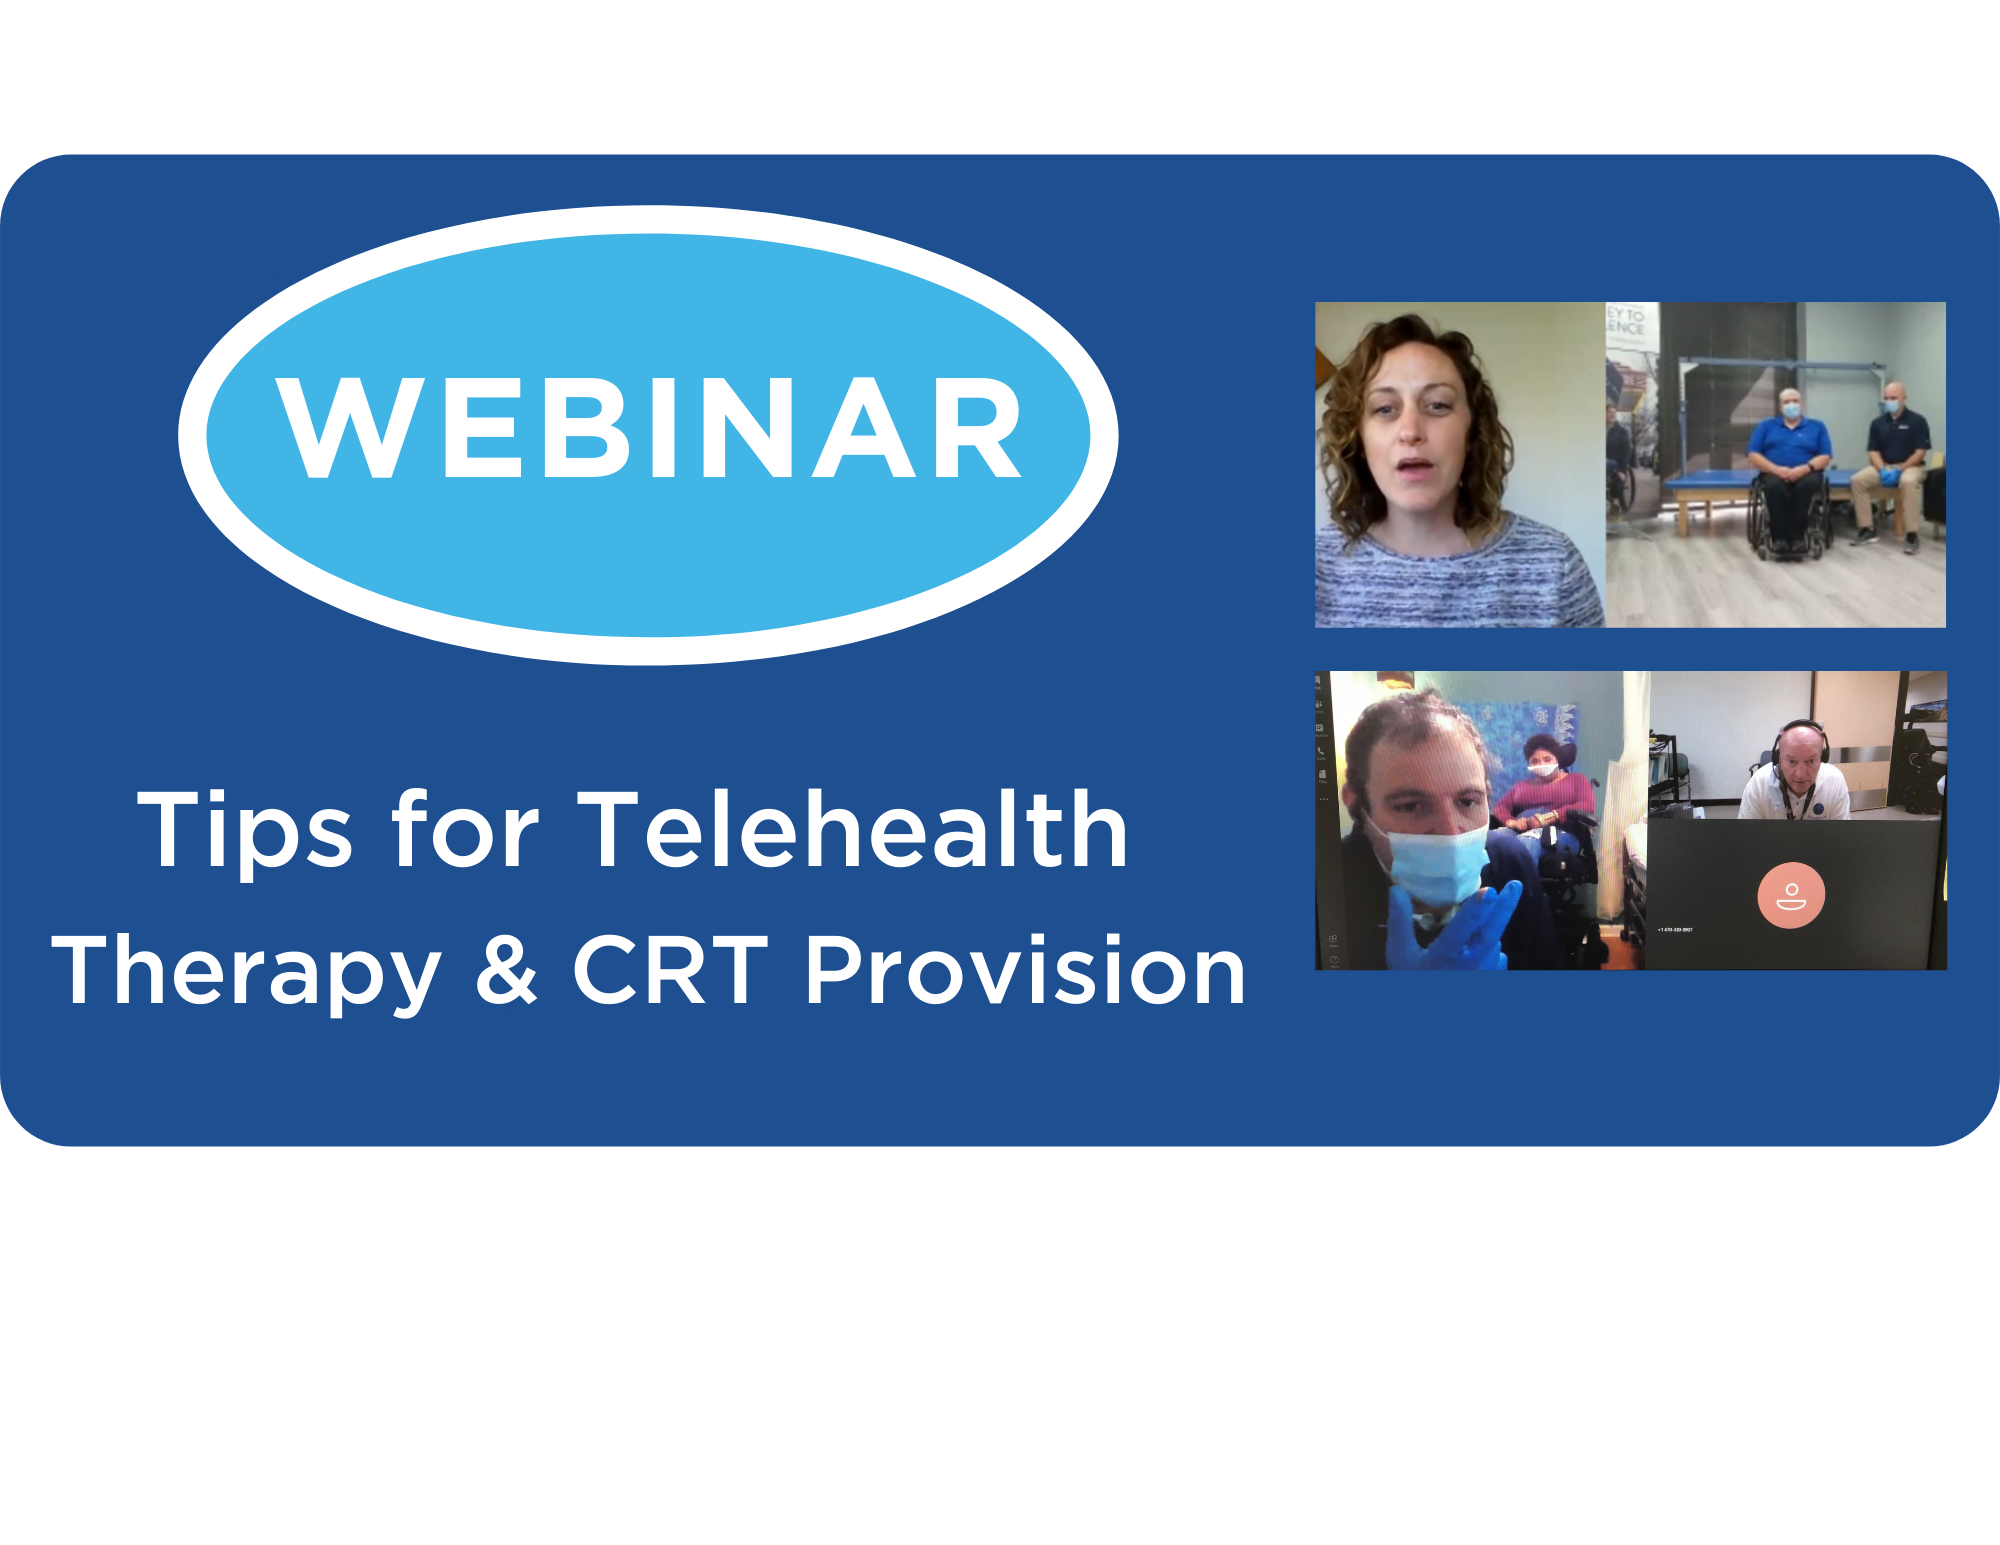 Tips for Telehealth Therapy & CRT Provision